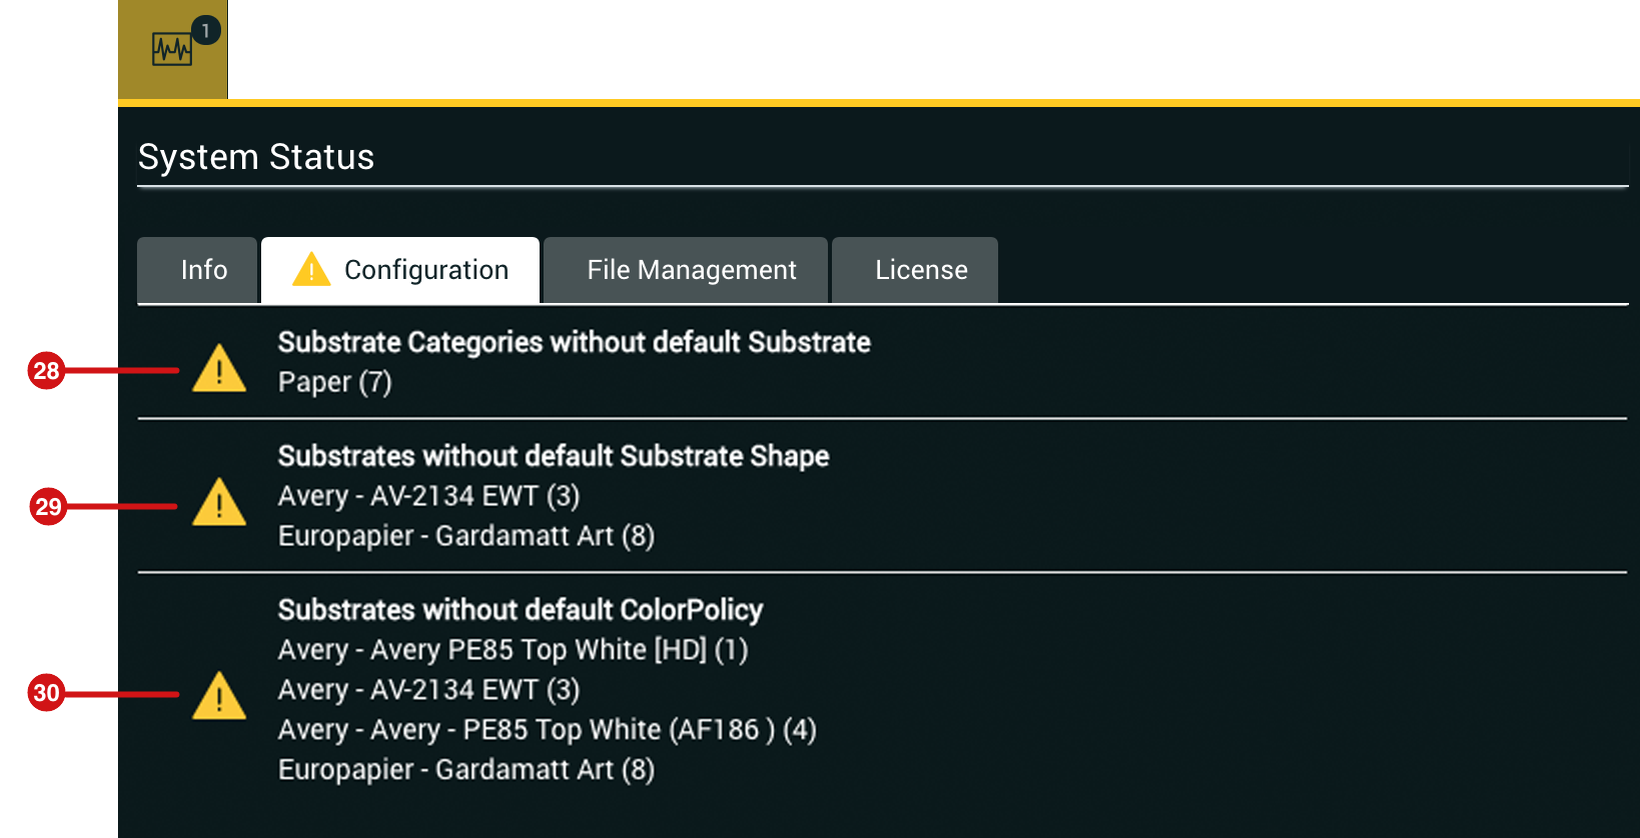 System Status Configuration Tab expanded